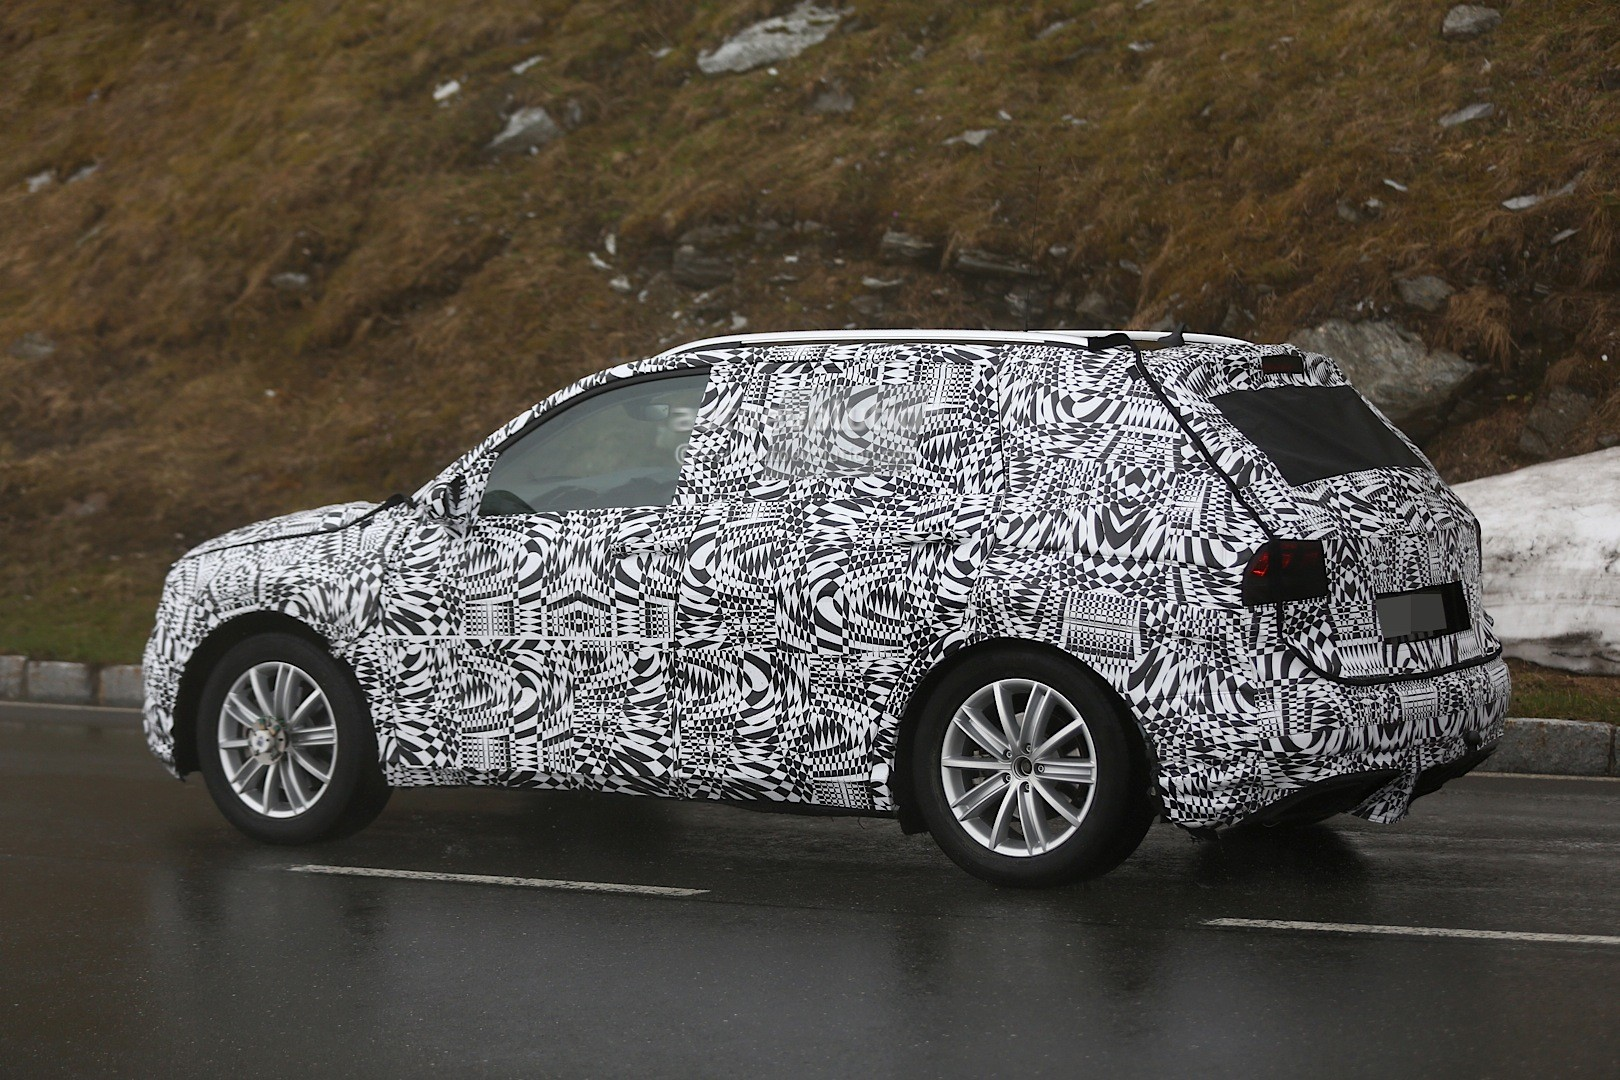 All-New 2016 Volkswagen Tiguan Looks Like a Baby Touareg in Latest Spy Photos - autoevolution